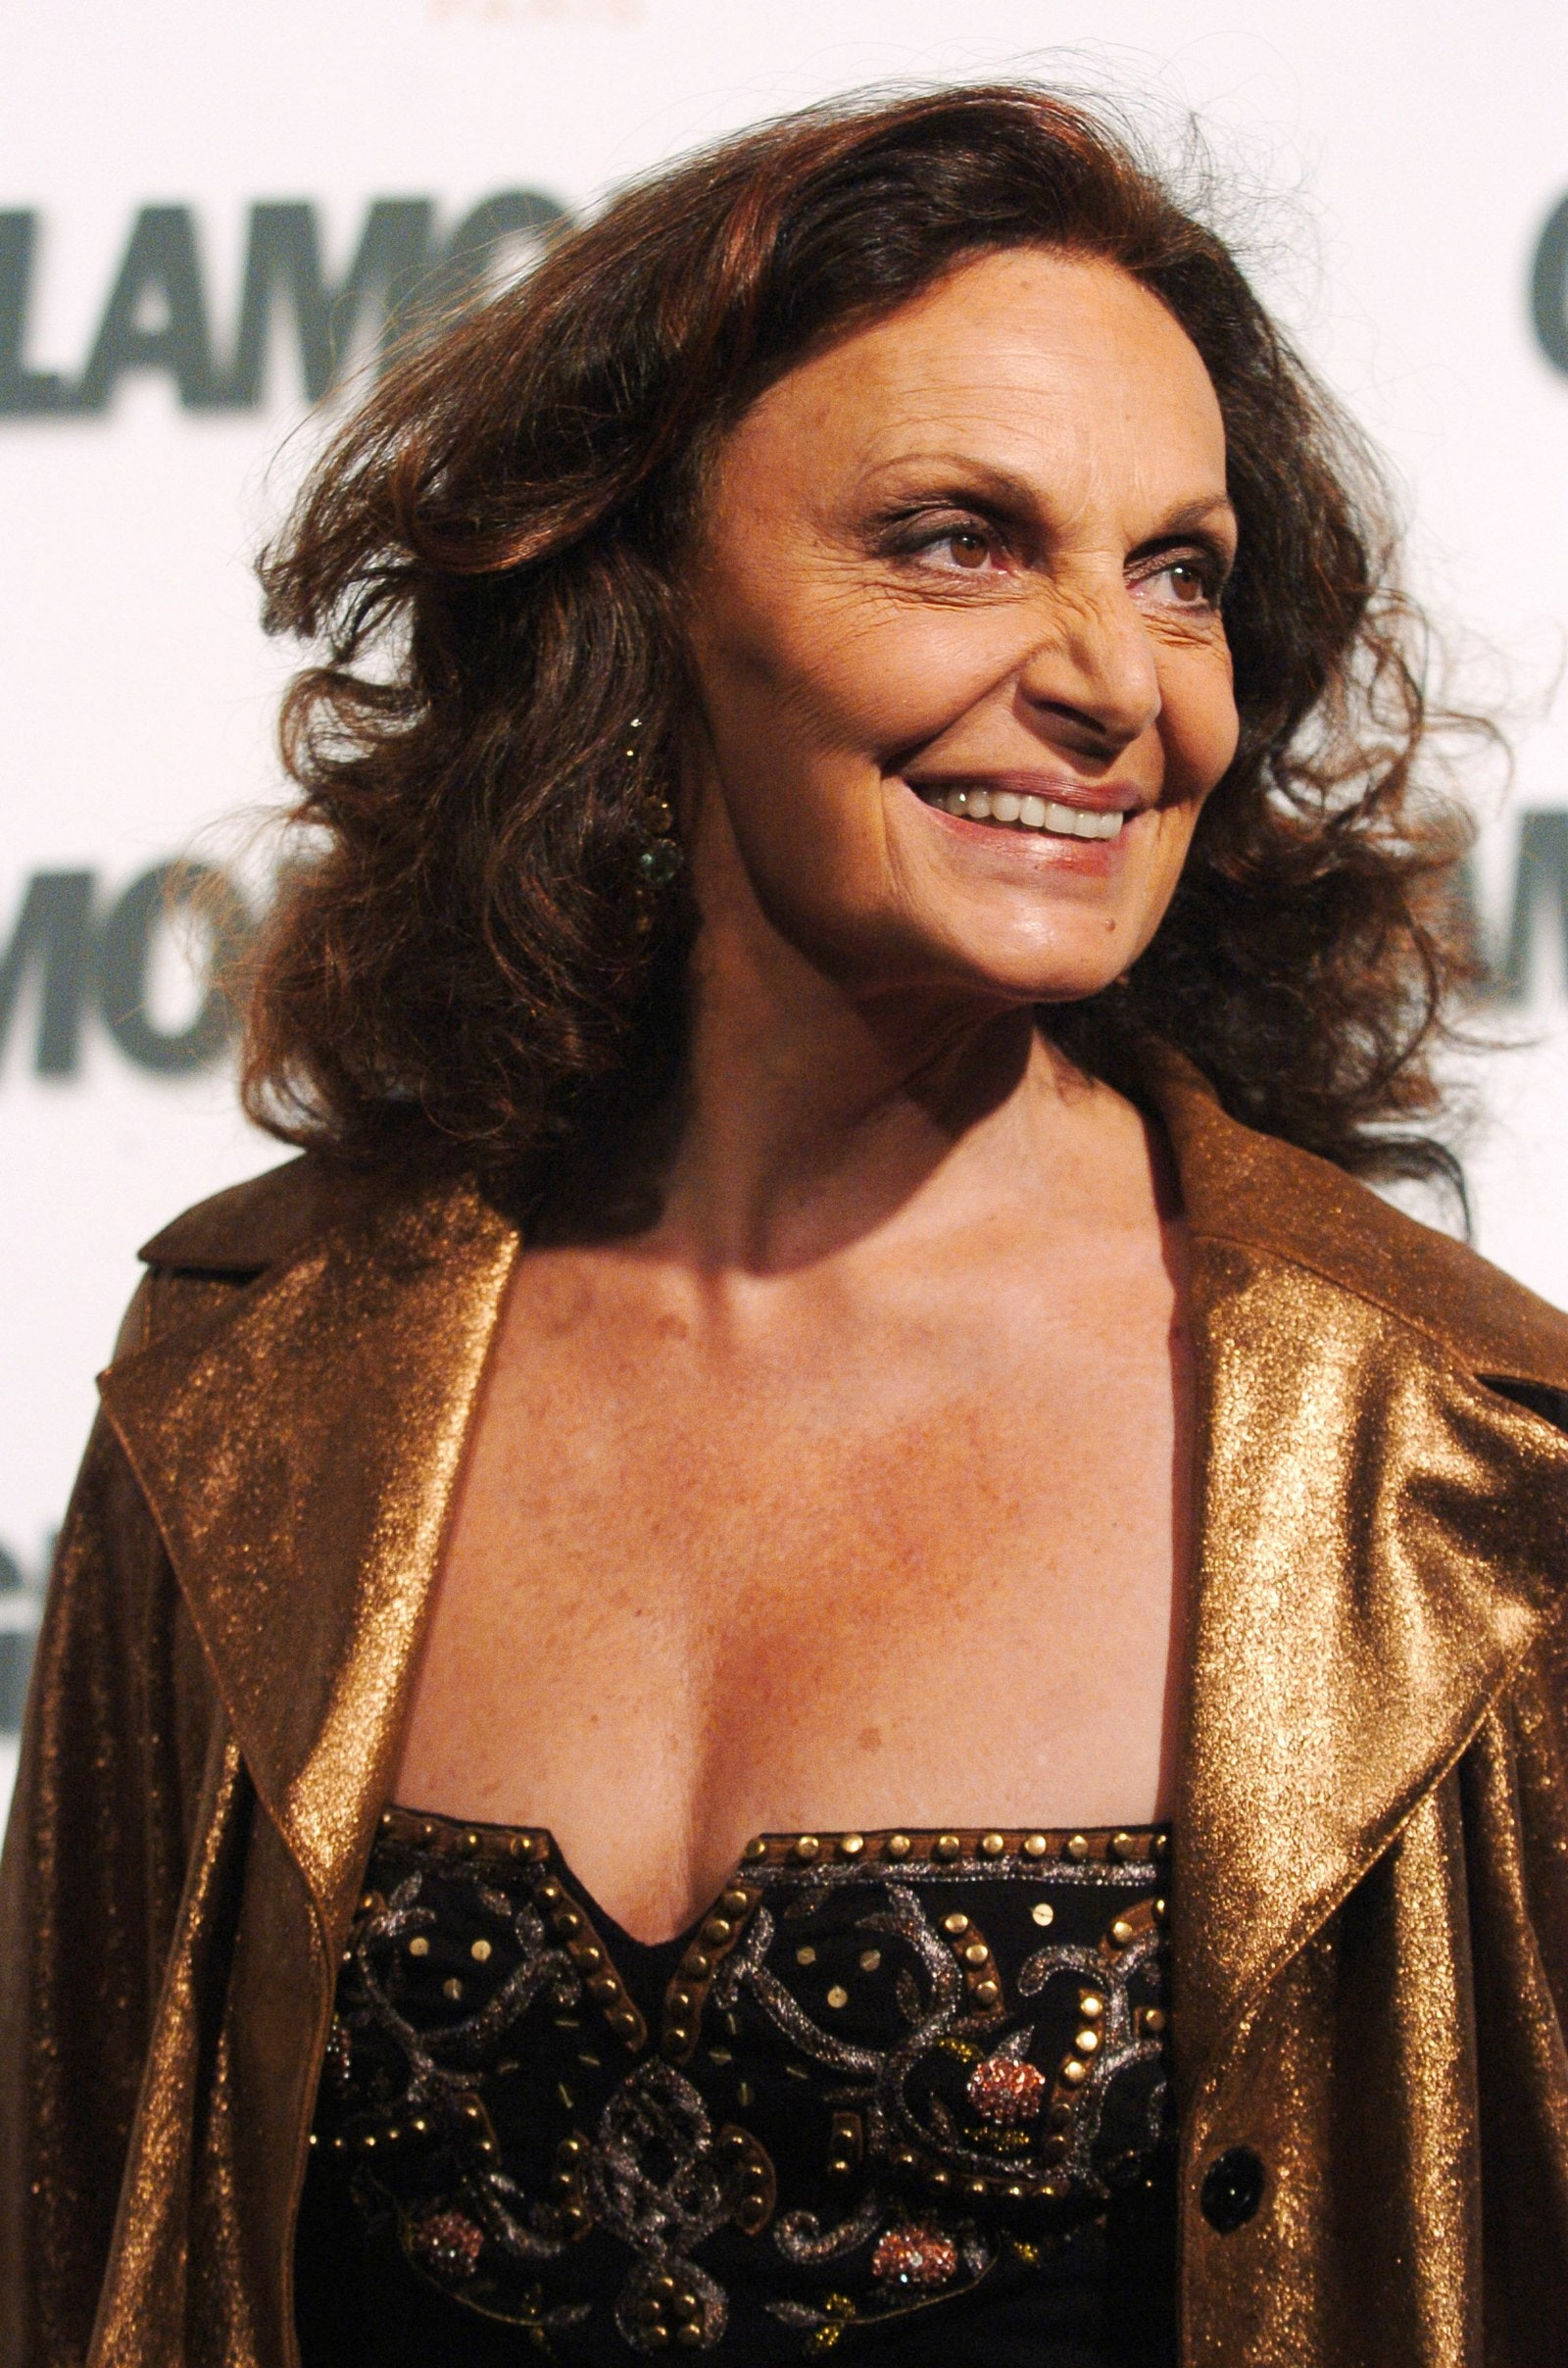 Image may contain Diane von Furstenberg Clothing Apparel Human Person Face and Fashion